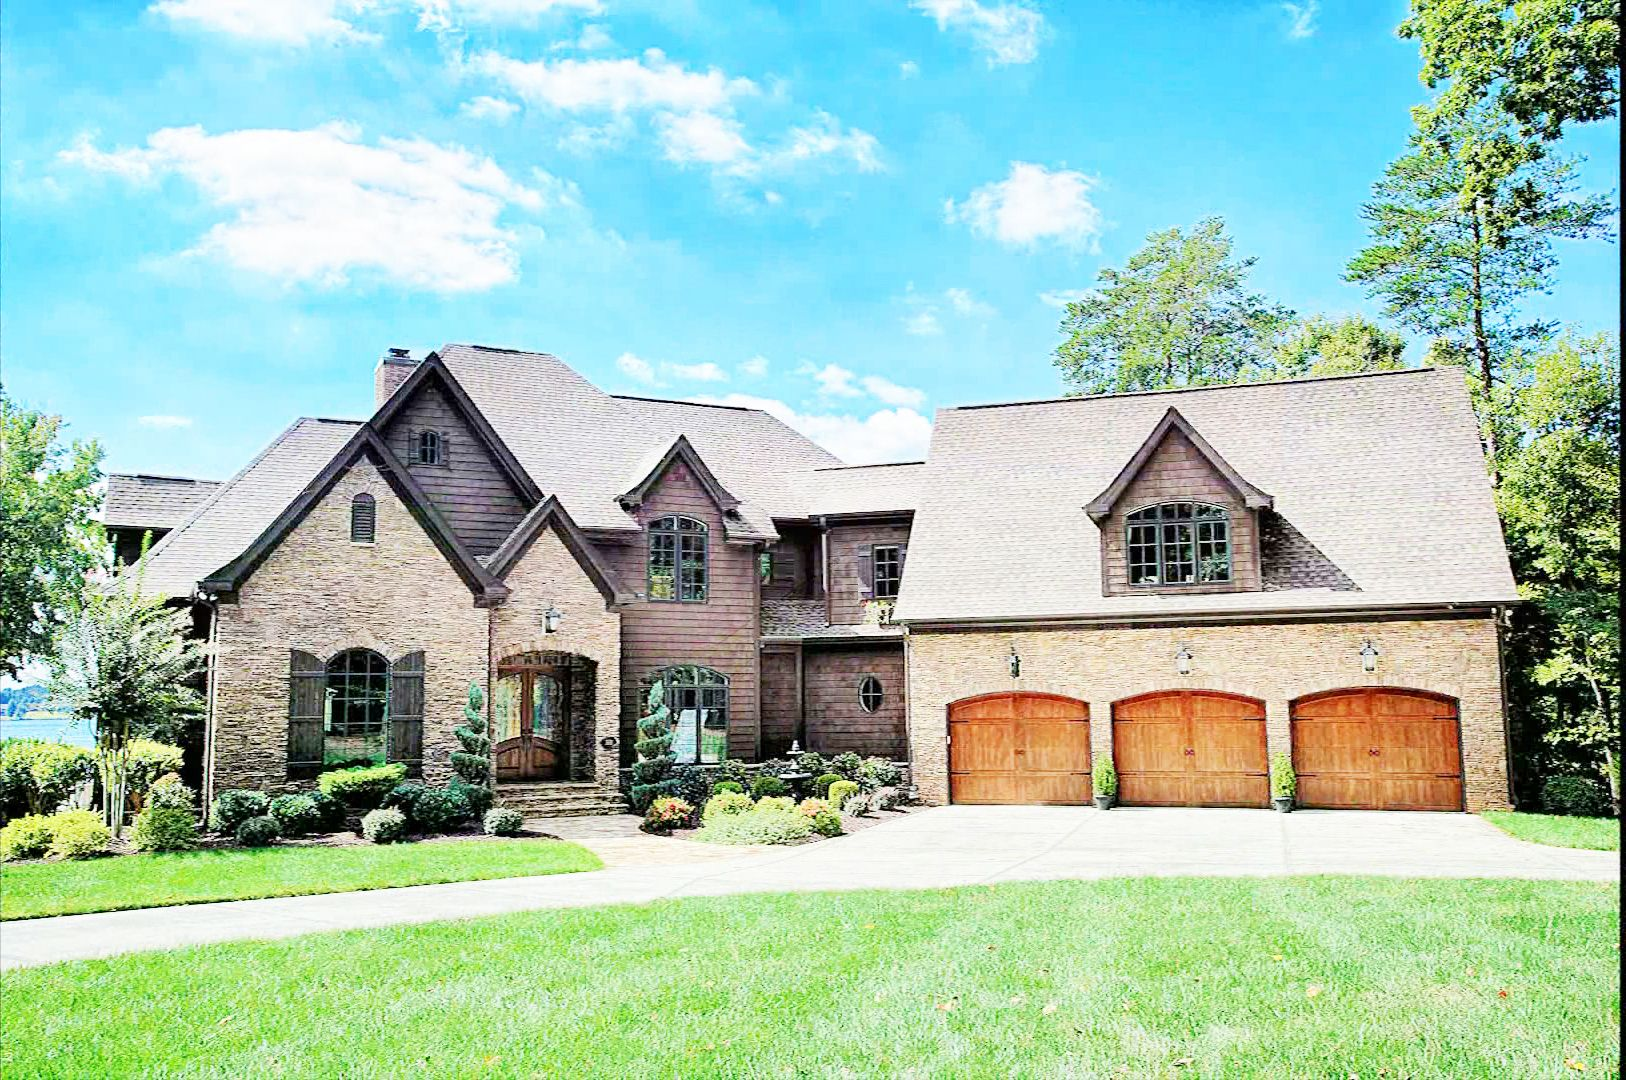 Beautiful house for sale on lake norman in north carolina